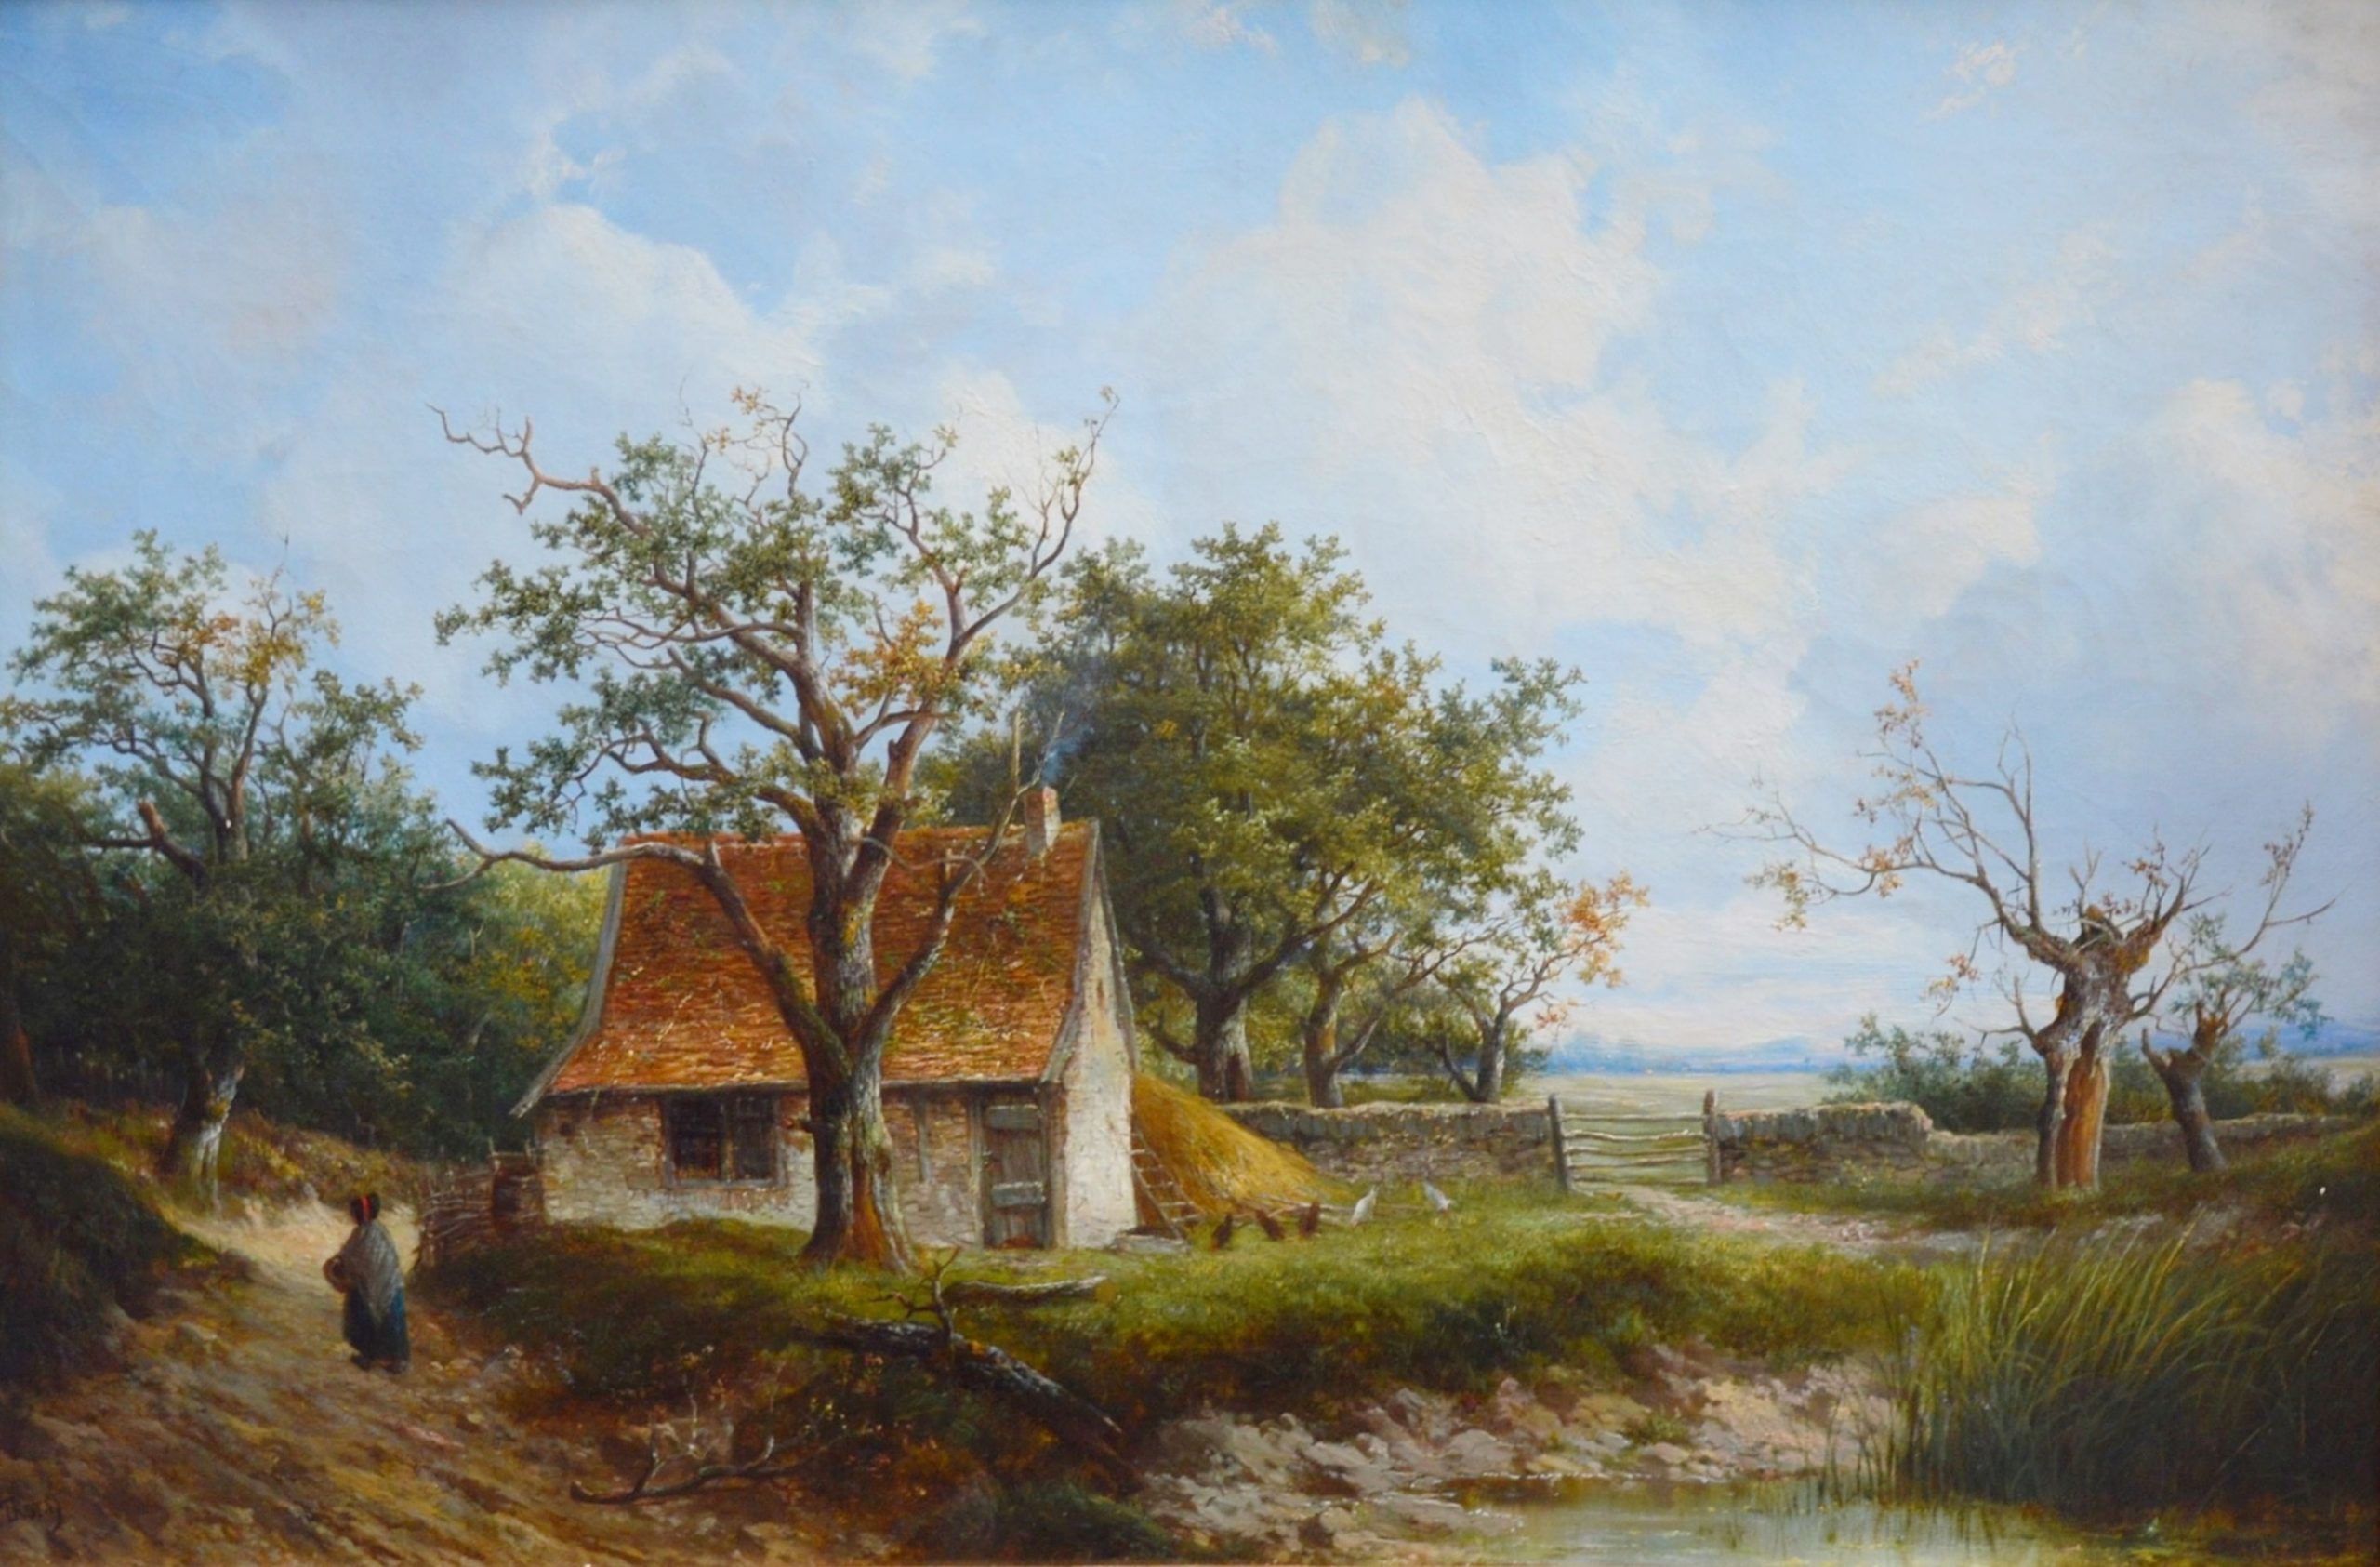 Near Stratford upon Avon - 19th Century English Landscape Oil Painting Image